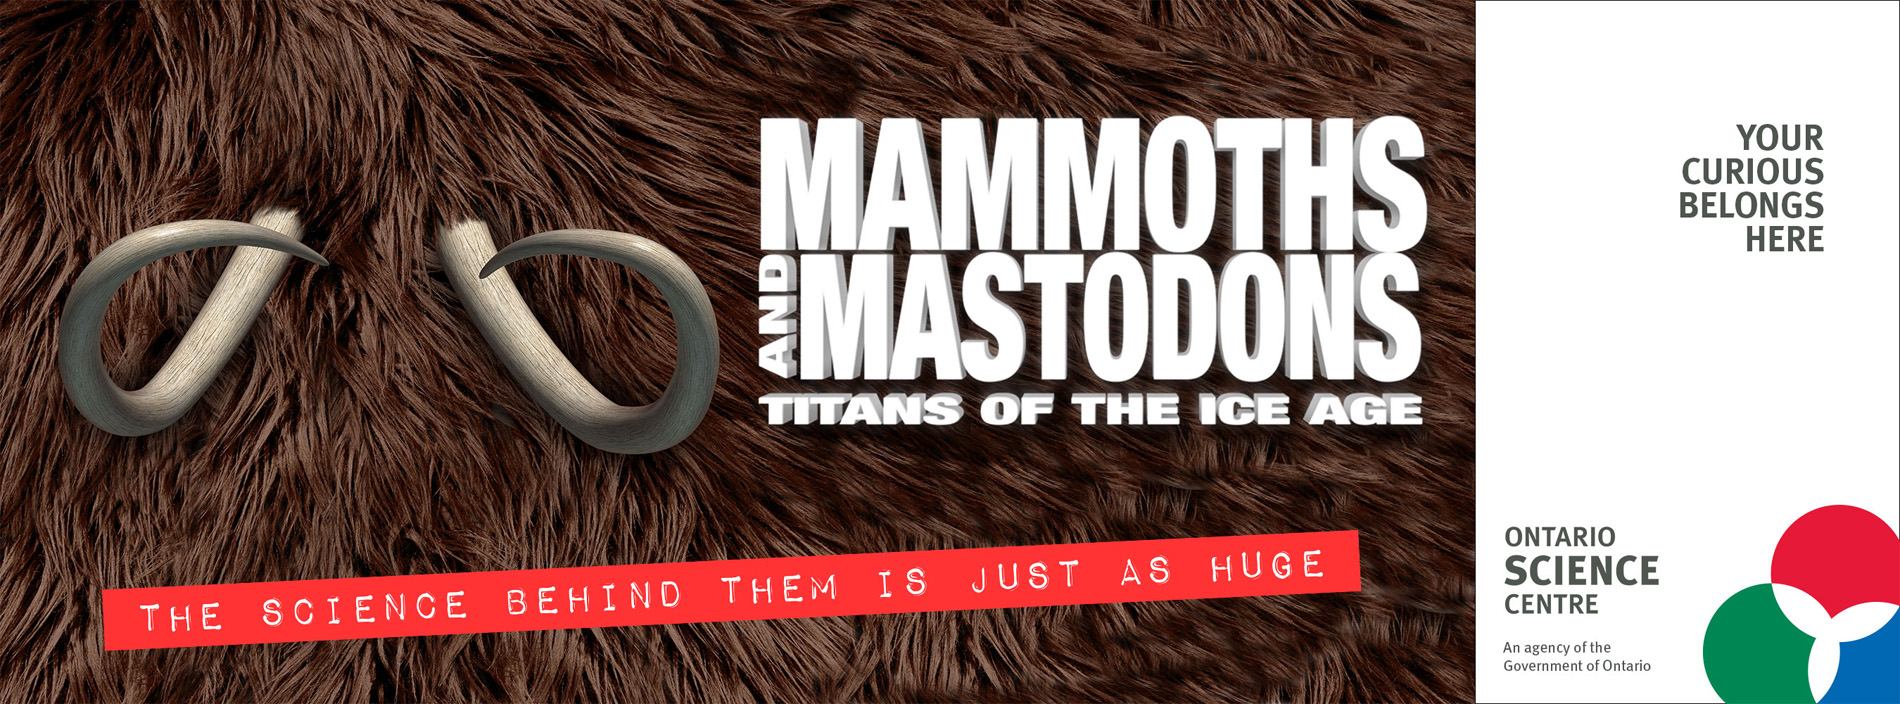 Mammoths and Mastodons Titans of the Ice Age